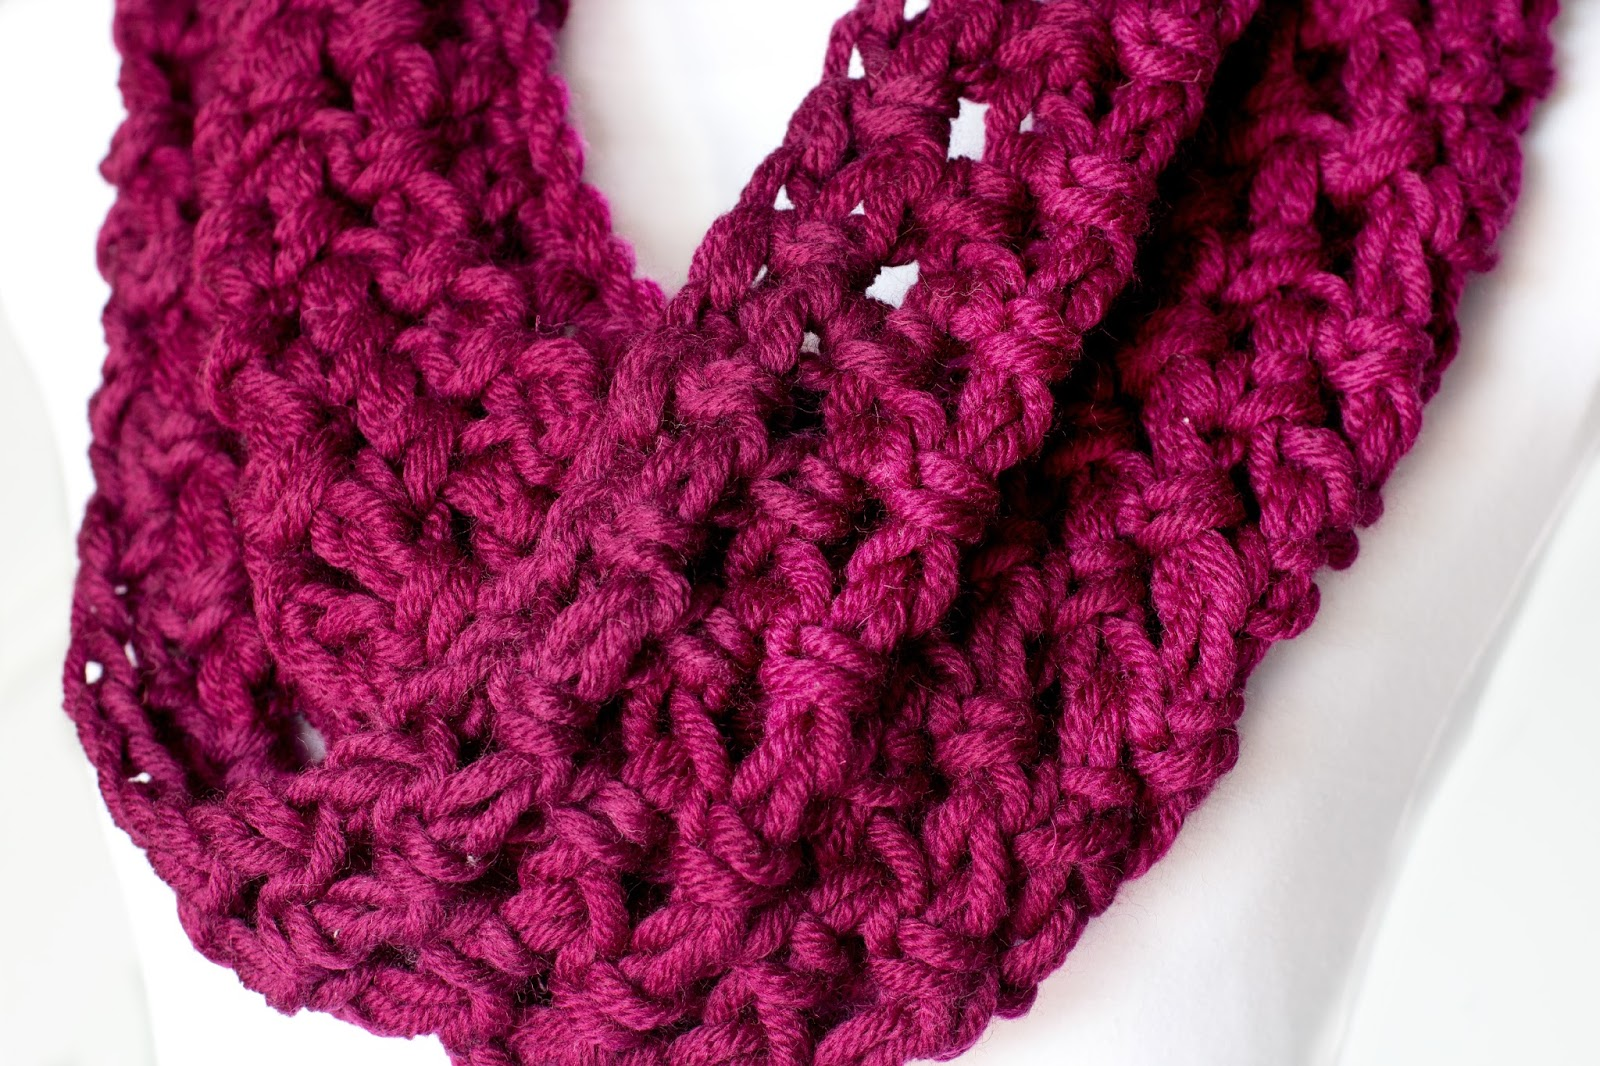 Crochet Patterns Using Chunky Yarn : Hopeful Honey Craft, Crochet, Create: Basic Chunky Cowl ...